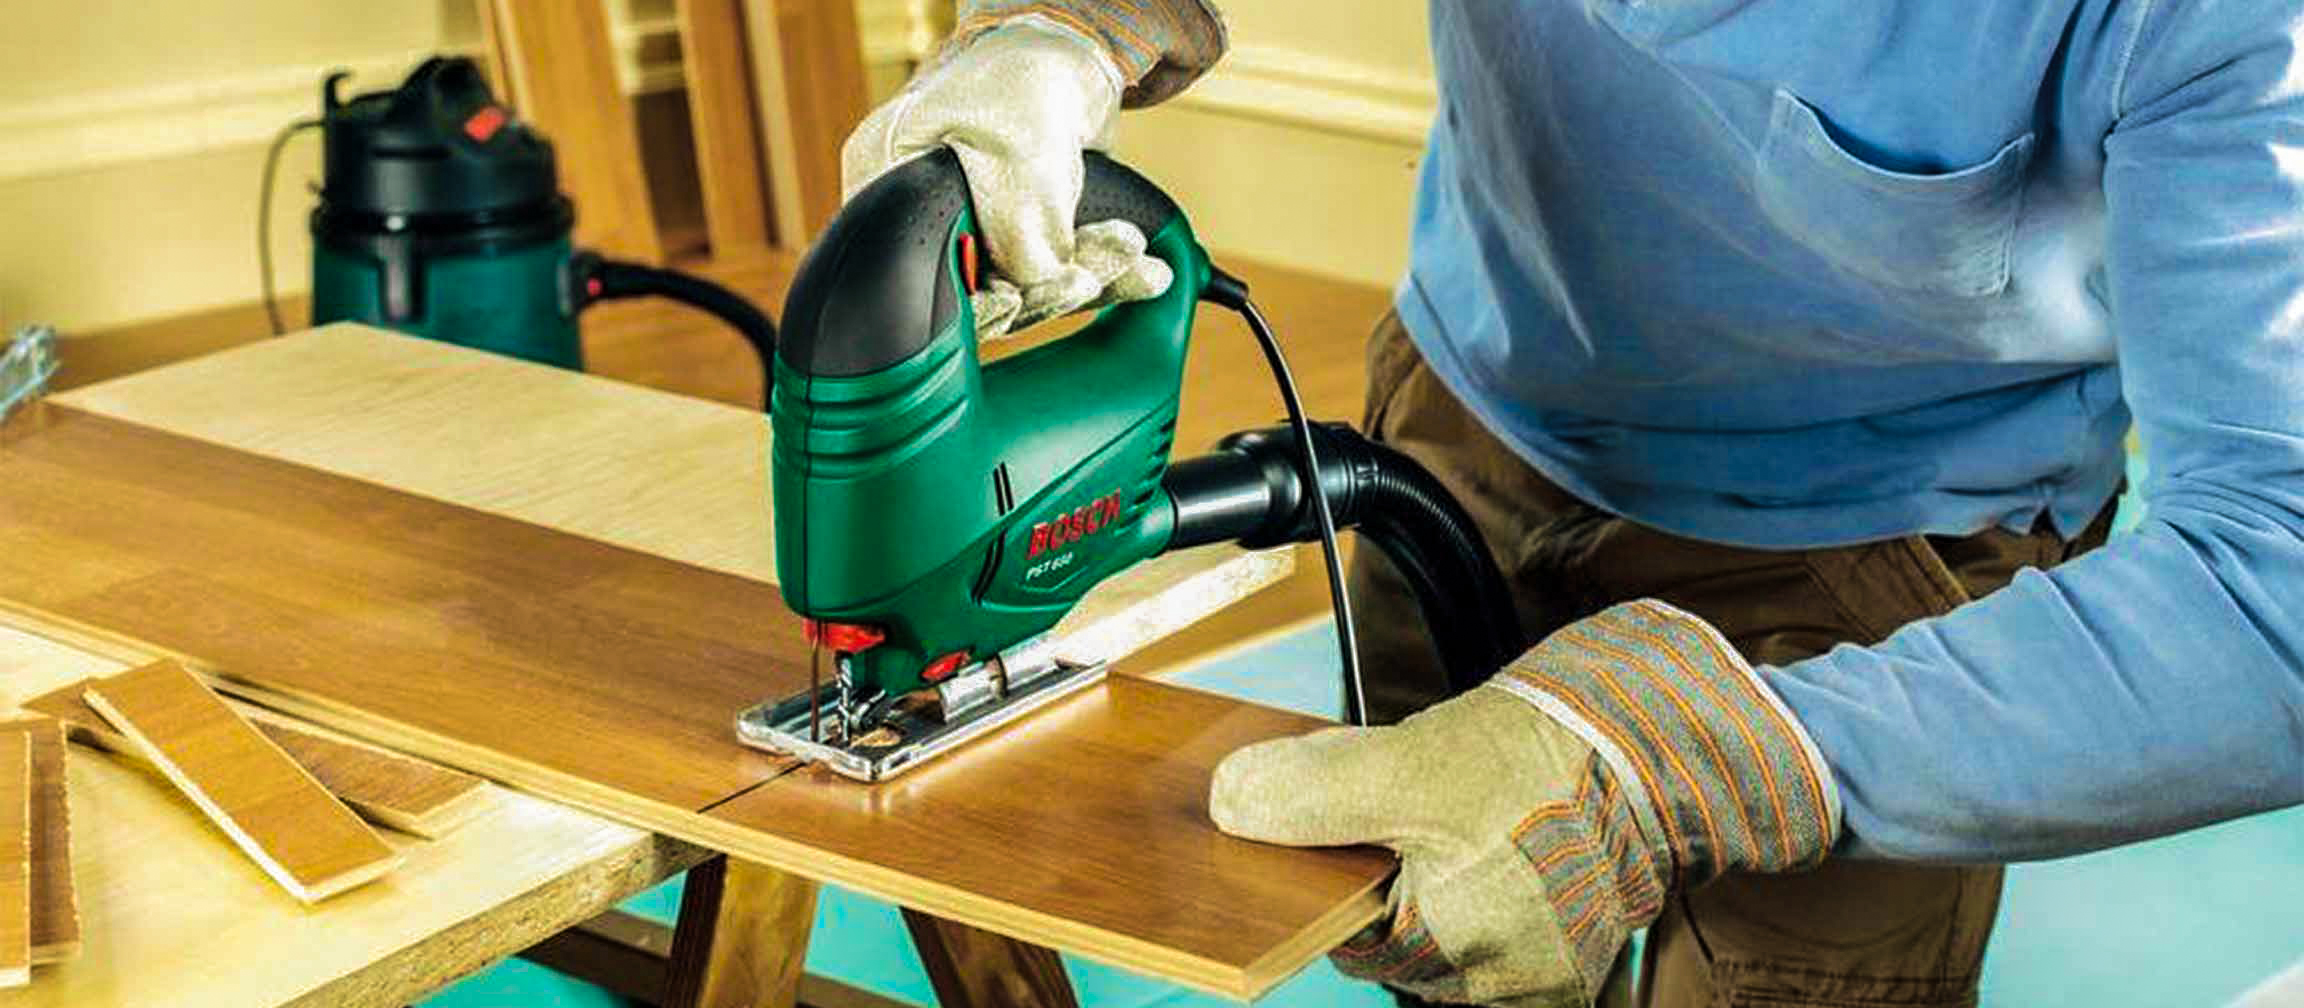 DIY Power Tools - Bosch Jigsaw